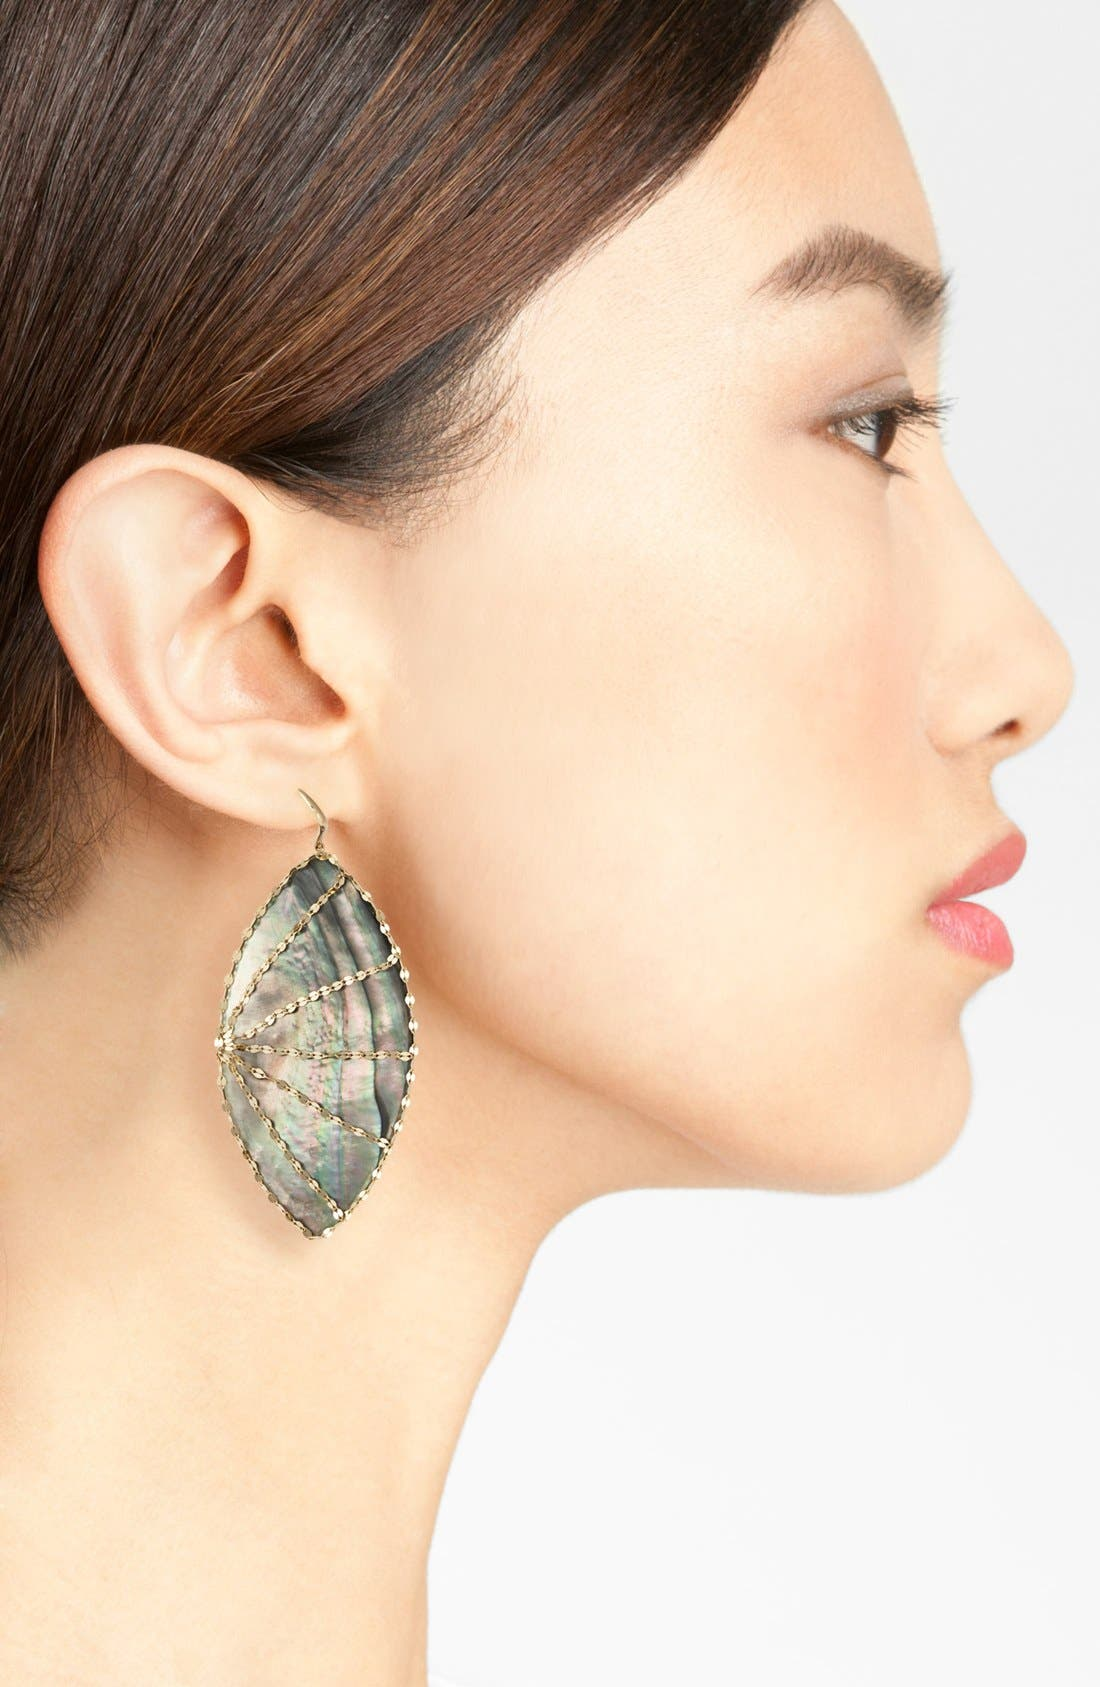 Lana Jewelry 'Mystiq Isabella' Drop Earrings,                             Alternate thumbnail 2, color,                             Black Mother Of Pearl